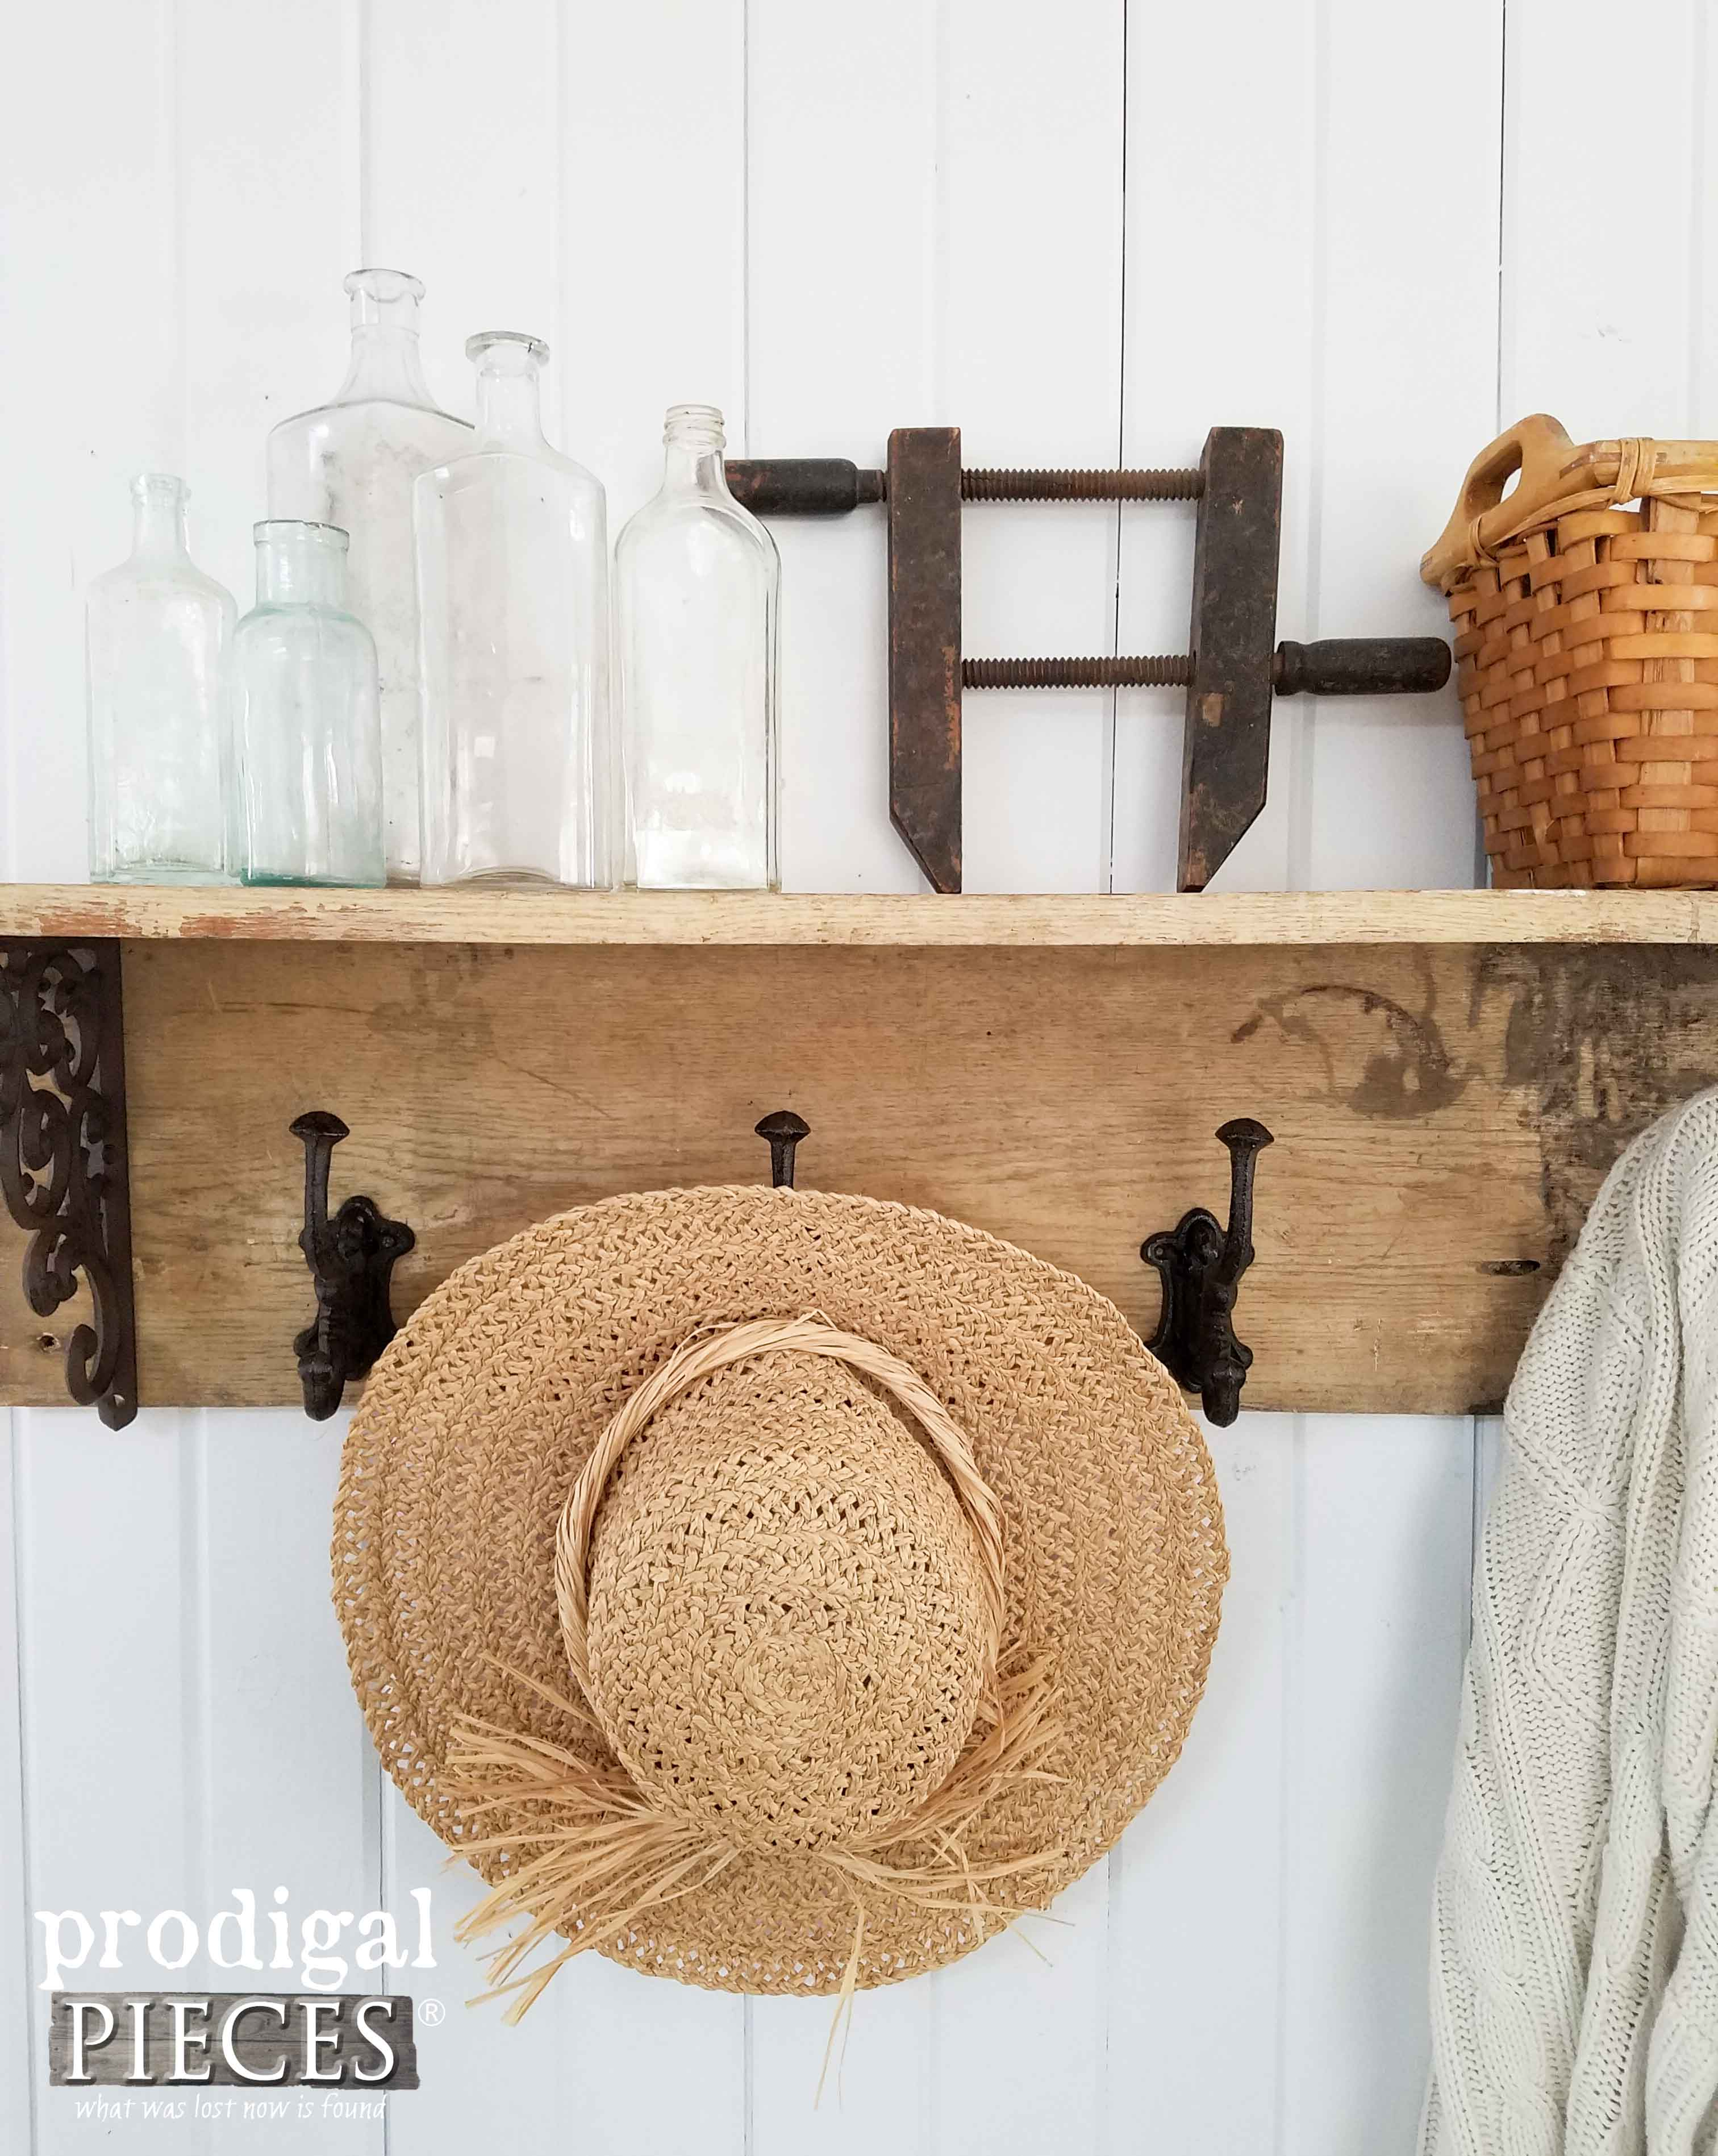 Farmhouse Entry with DIY Coat Rack Plans by Prodigal Pieces | www.prodigalpieces.com